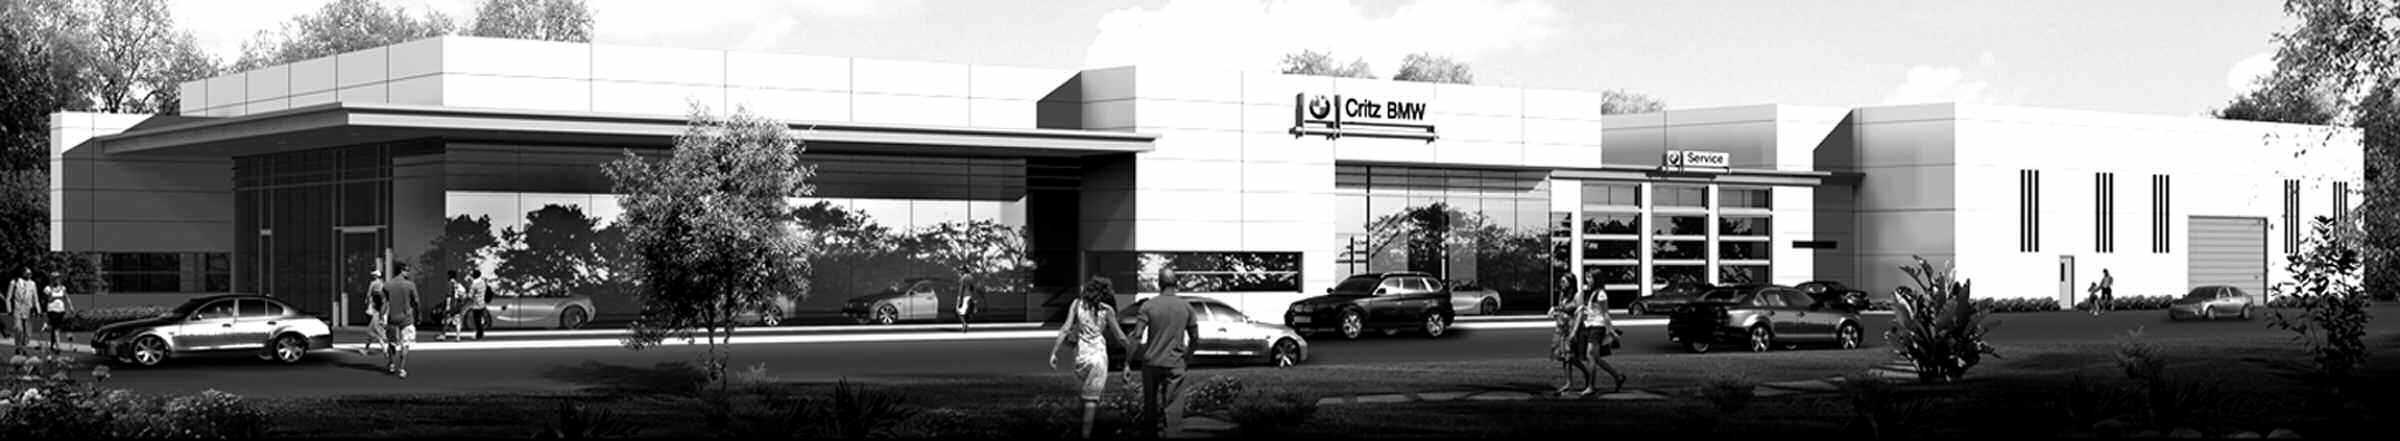 Rendering of the new Critz BMW